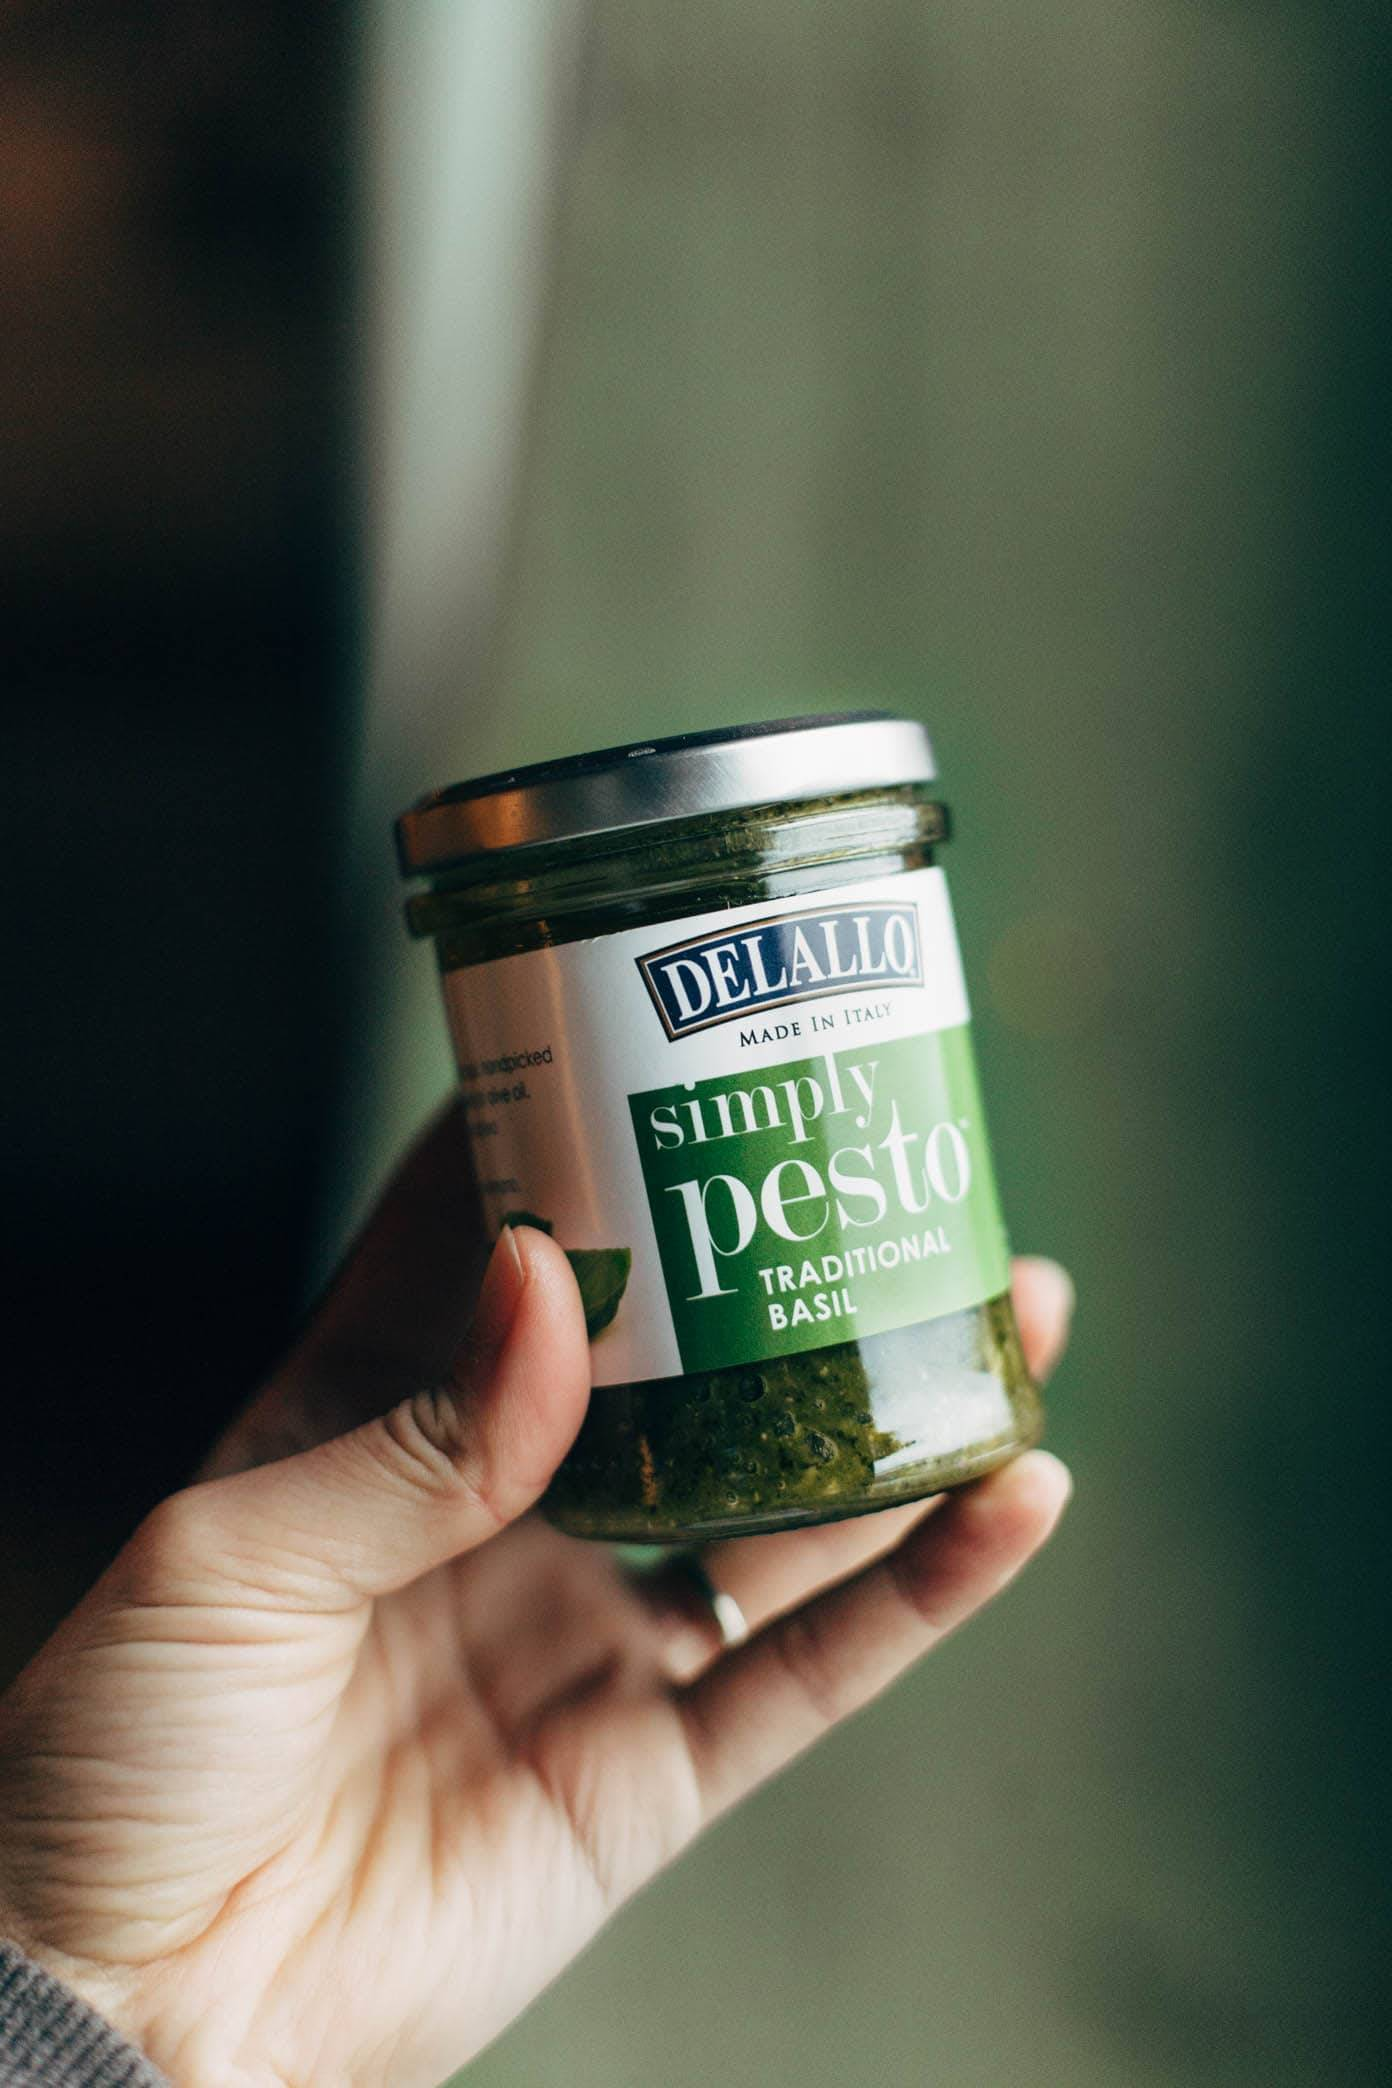 delallo pesto in a jar